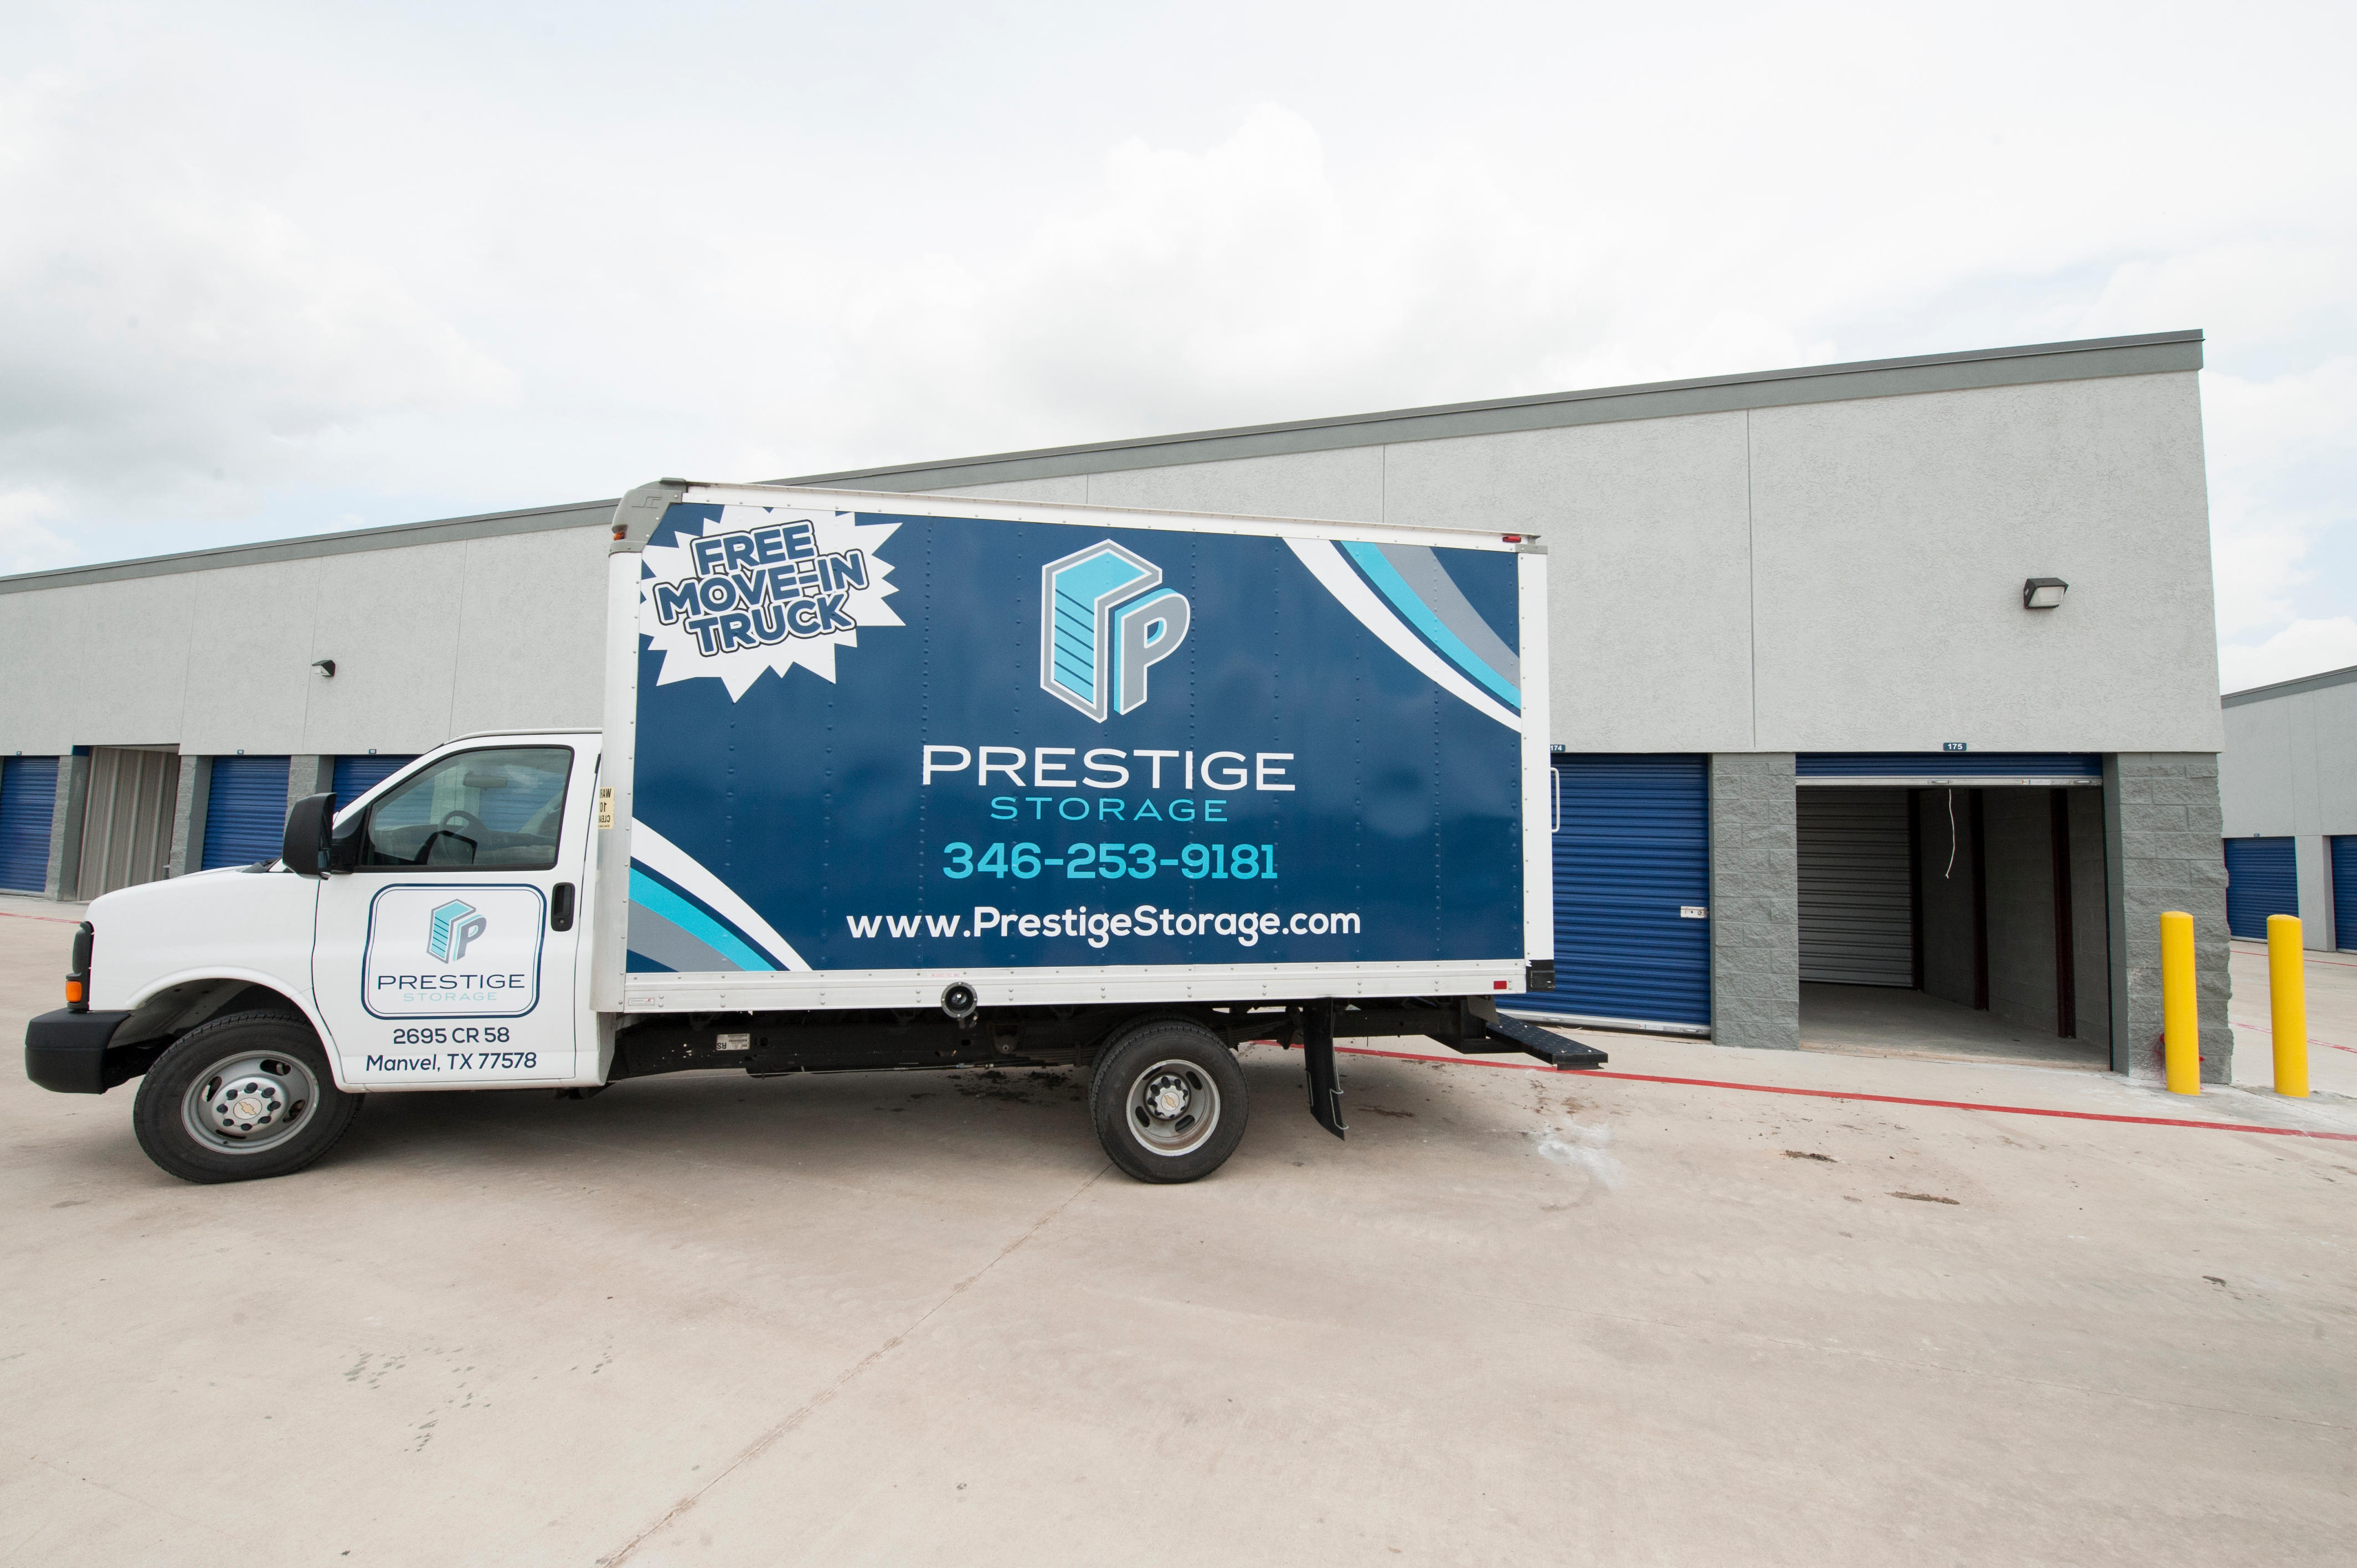 Prestige Storage - CR 58 image 4